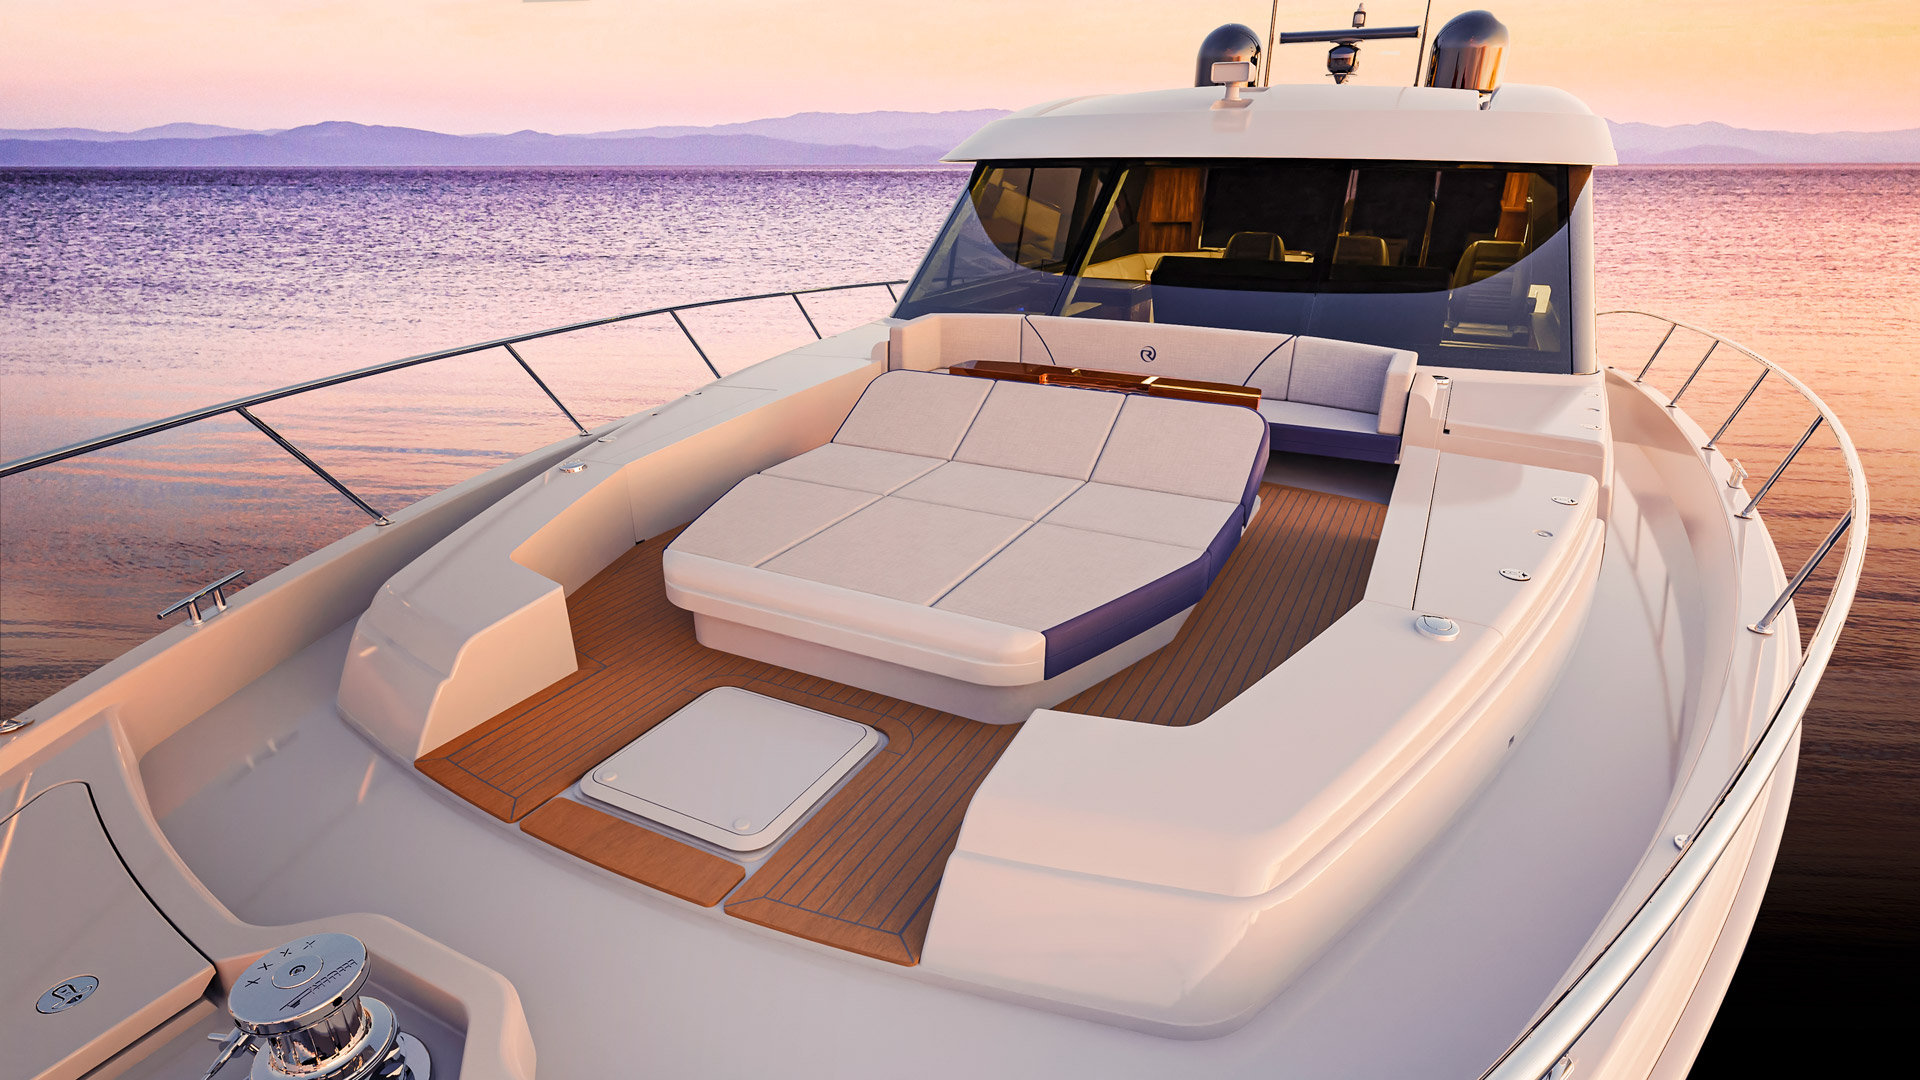 Riviera 645 SUV Foredeck 02 – Newport Edition shown with grey caulked teak